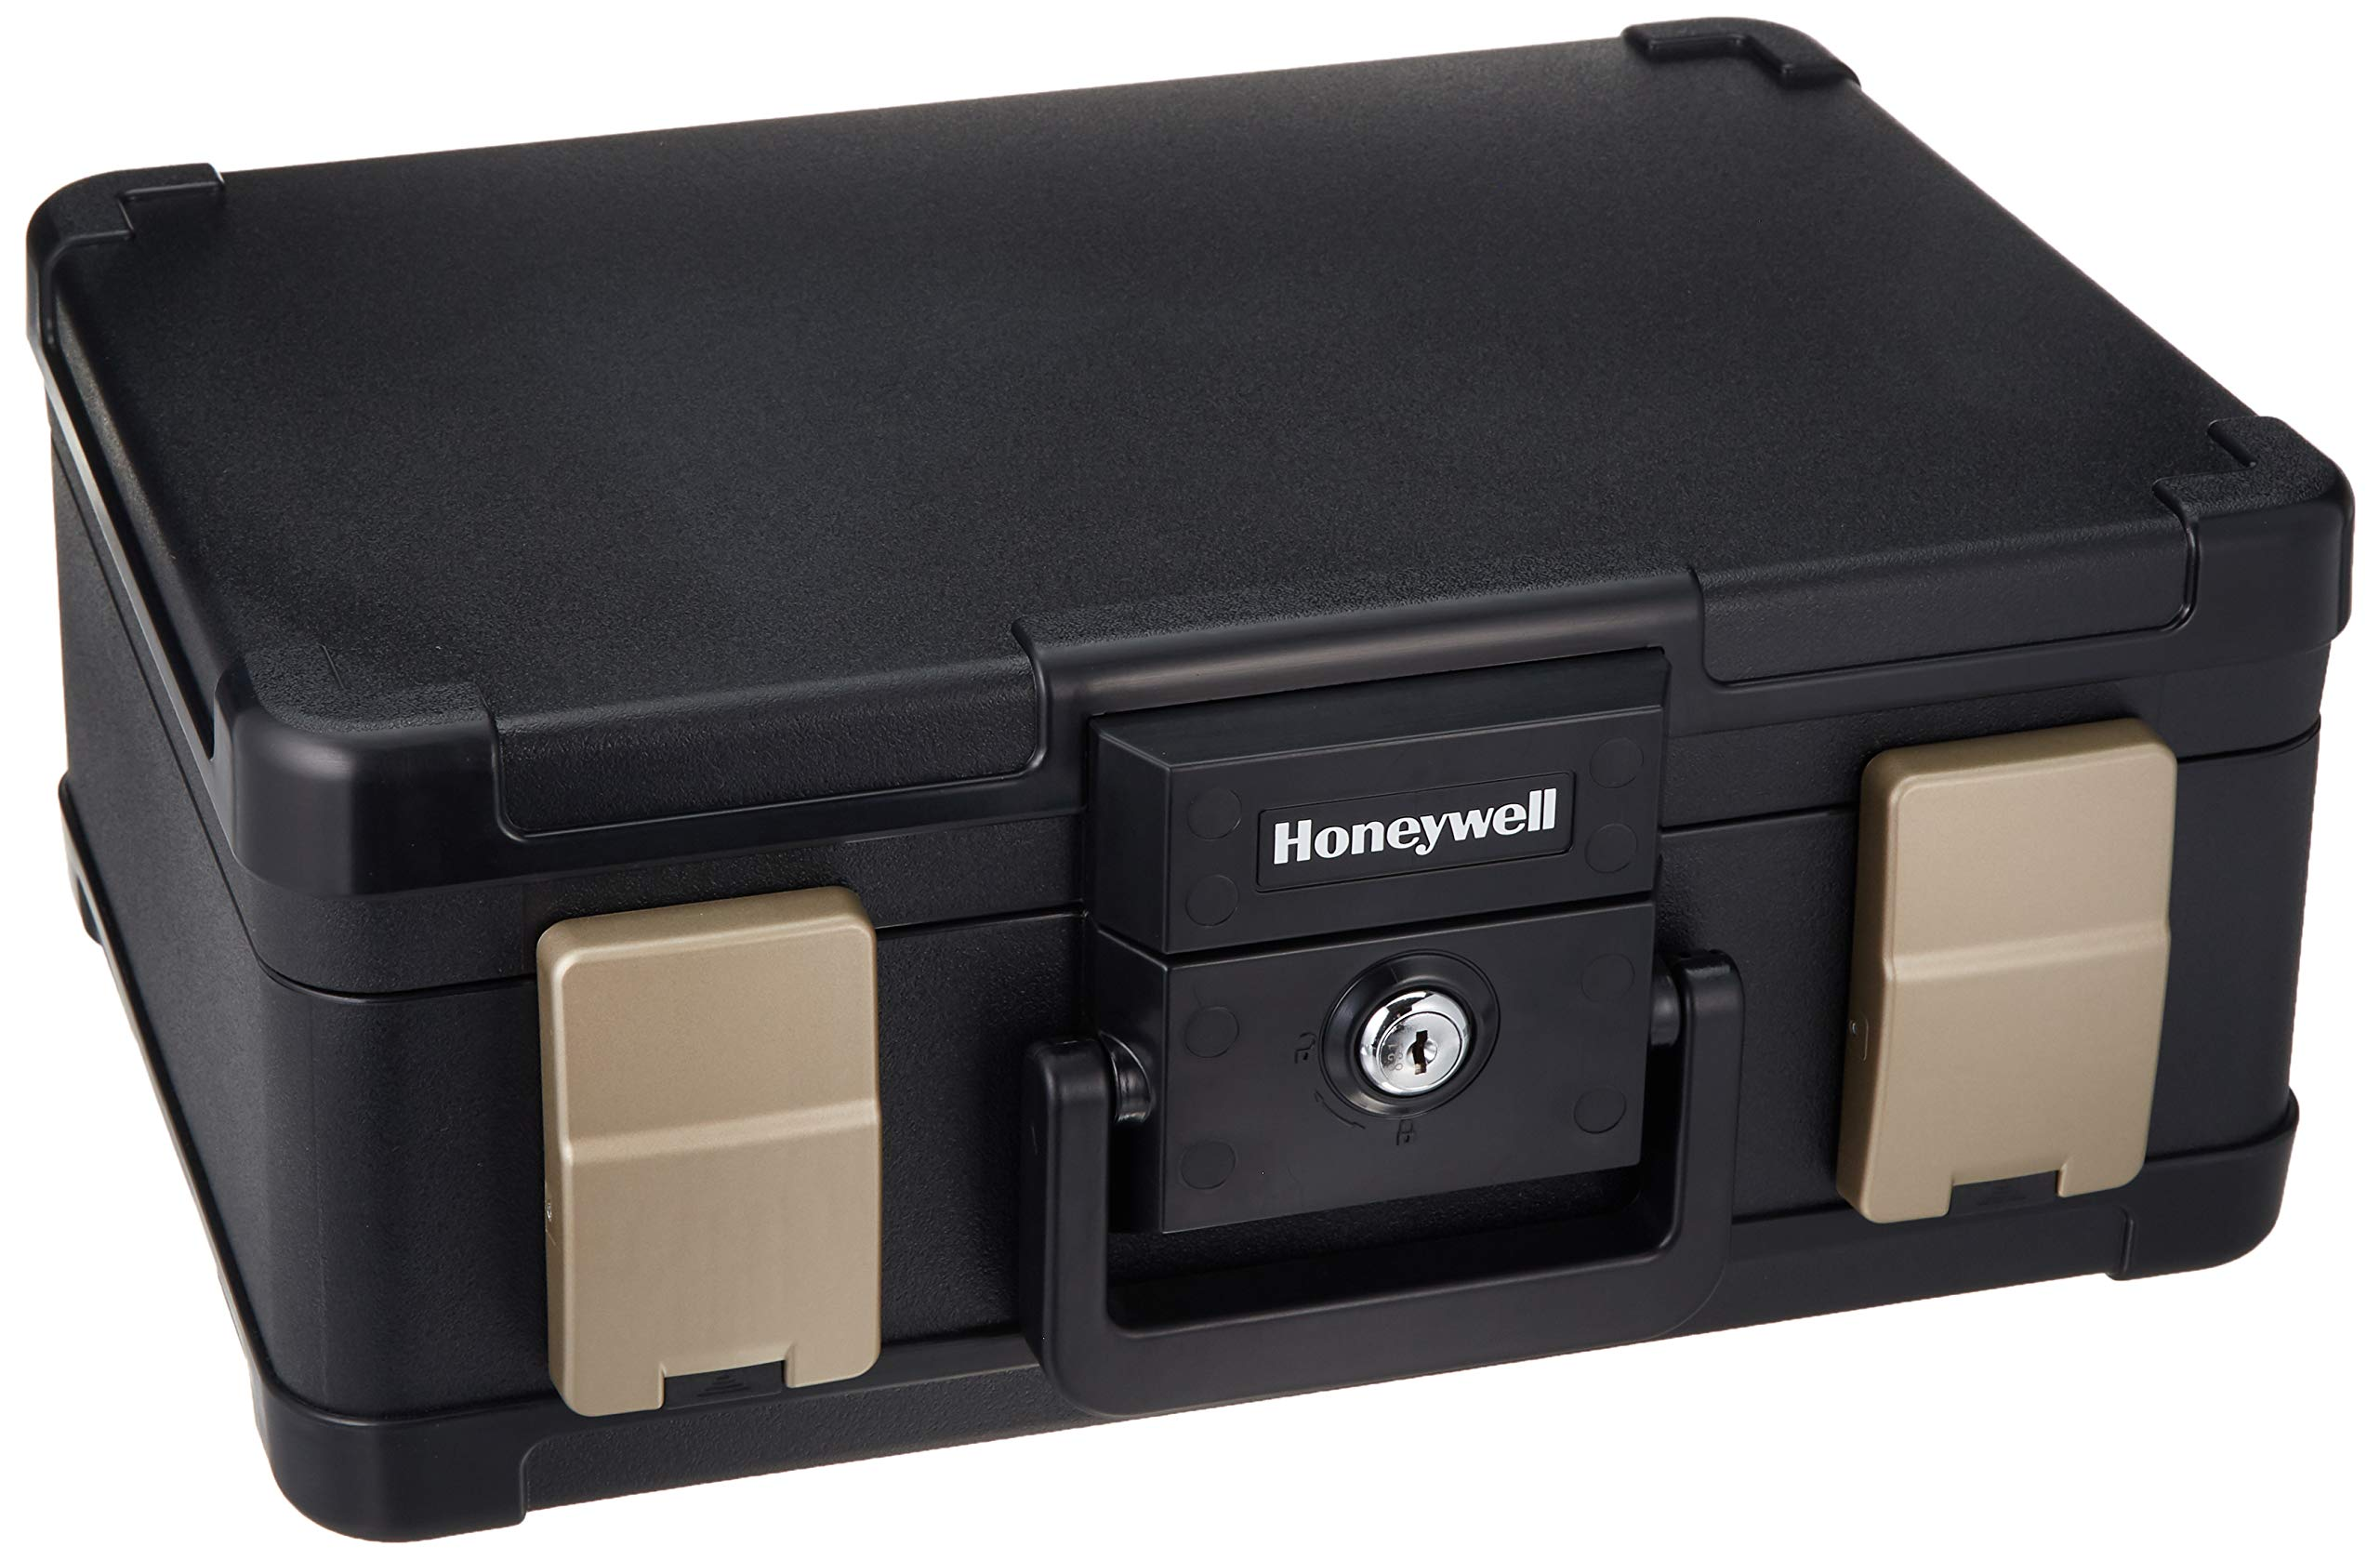 HONEYWELL - 30 Minute Fire Safe Waterproof Safe Box Chest with Carry Handle, Medium, 1103